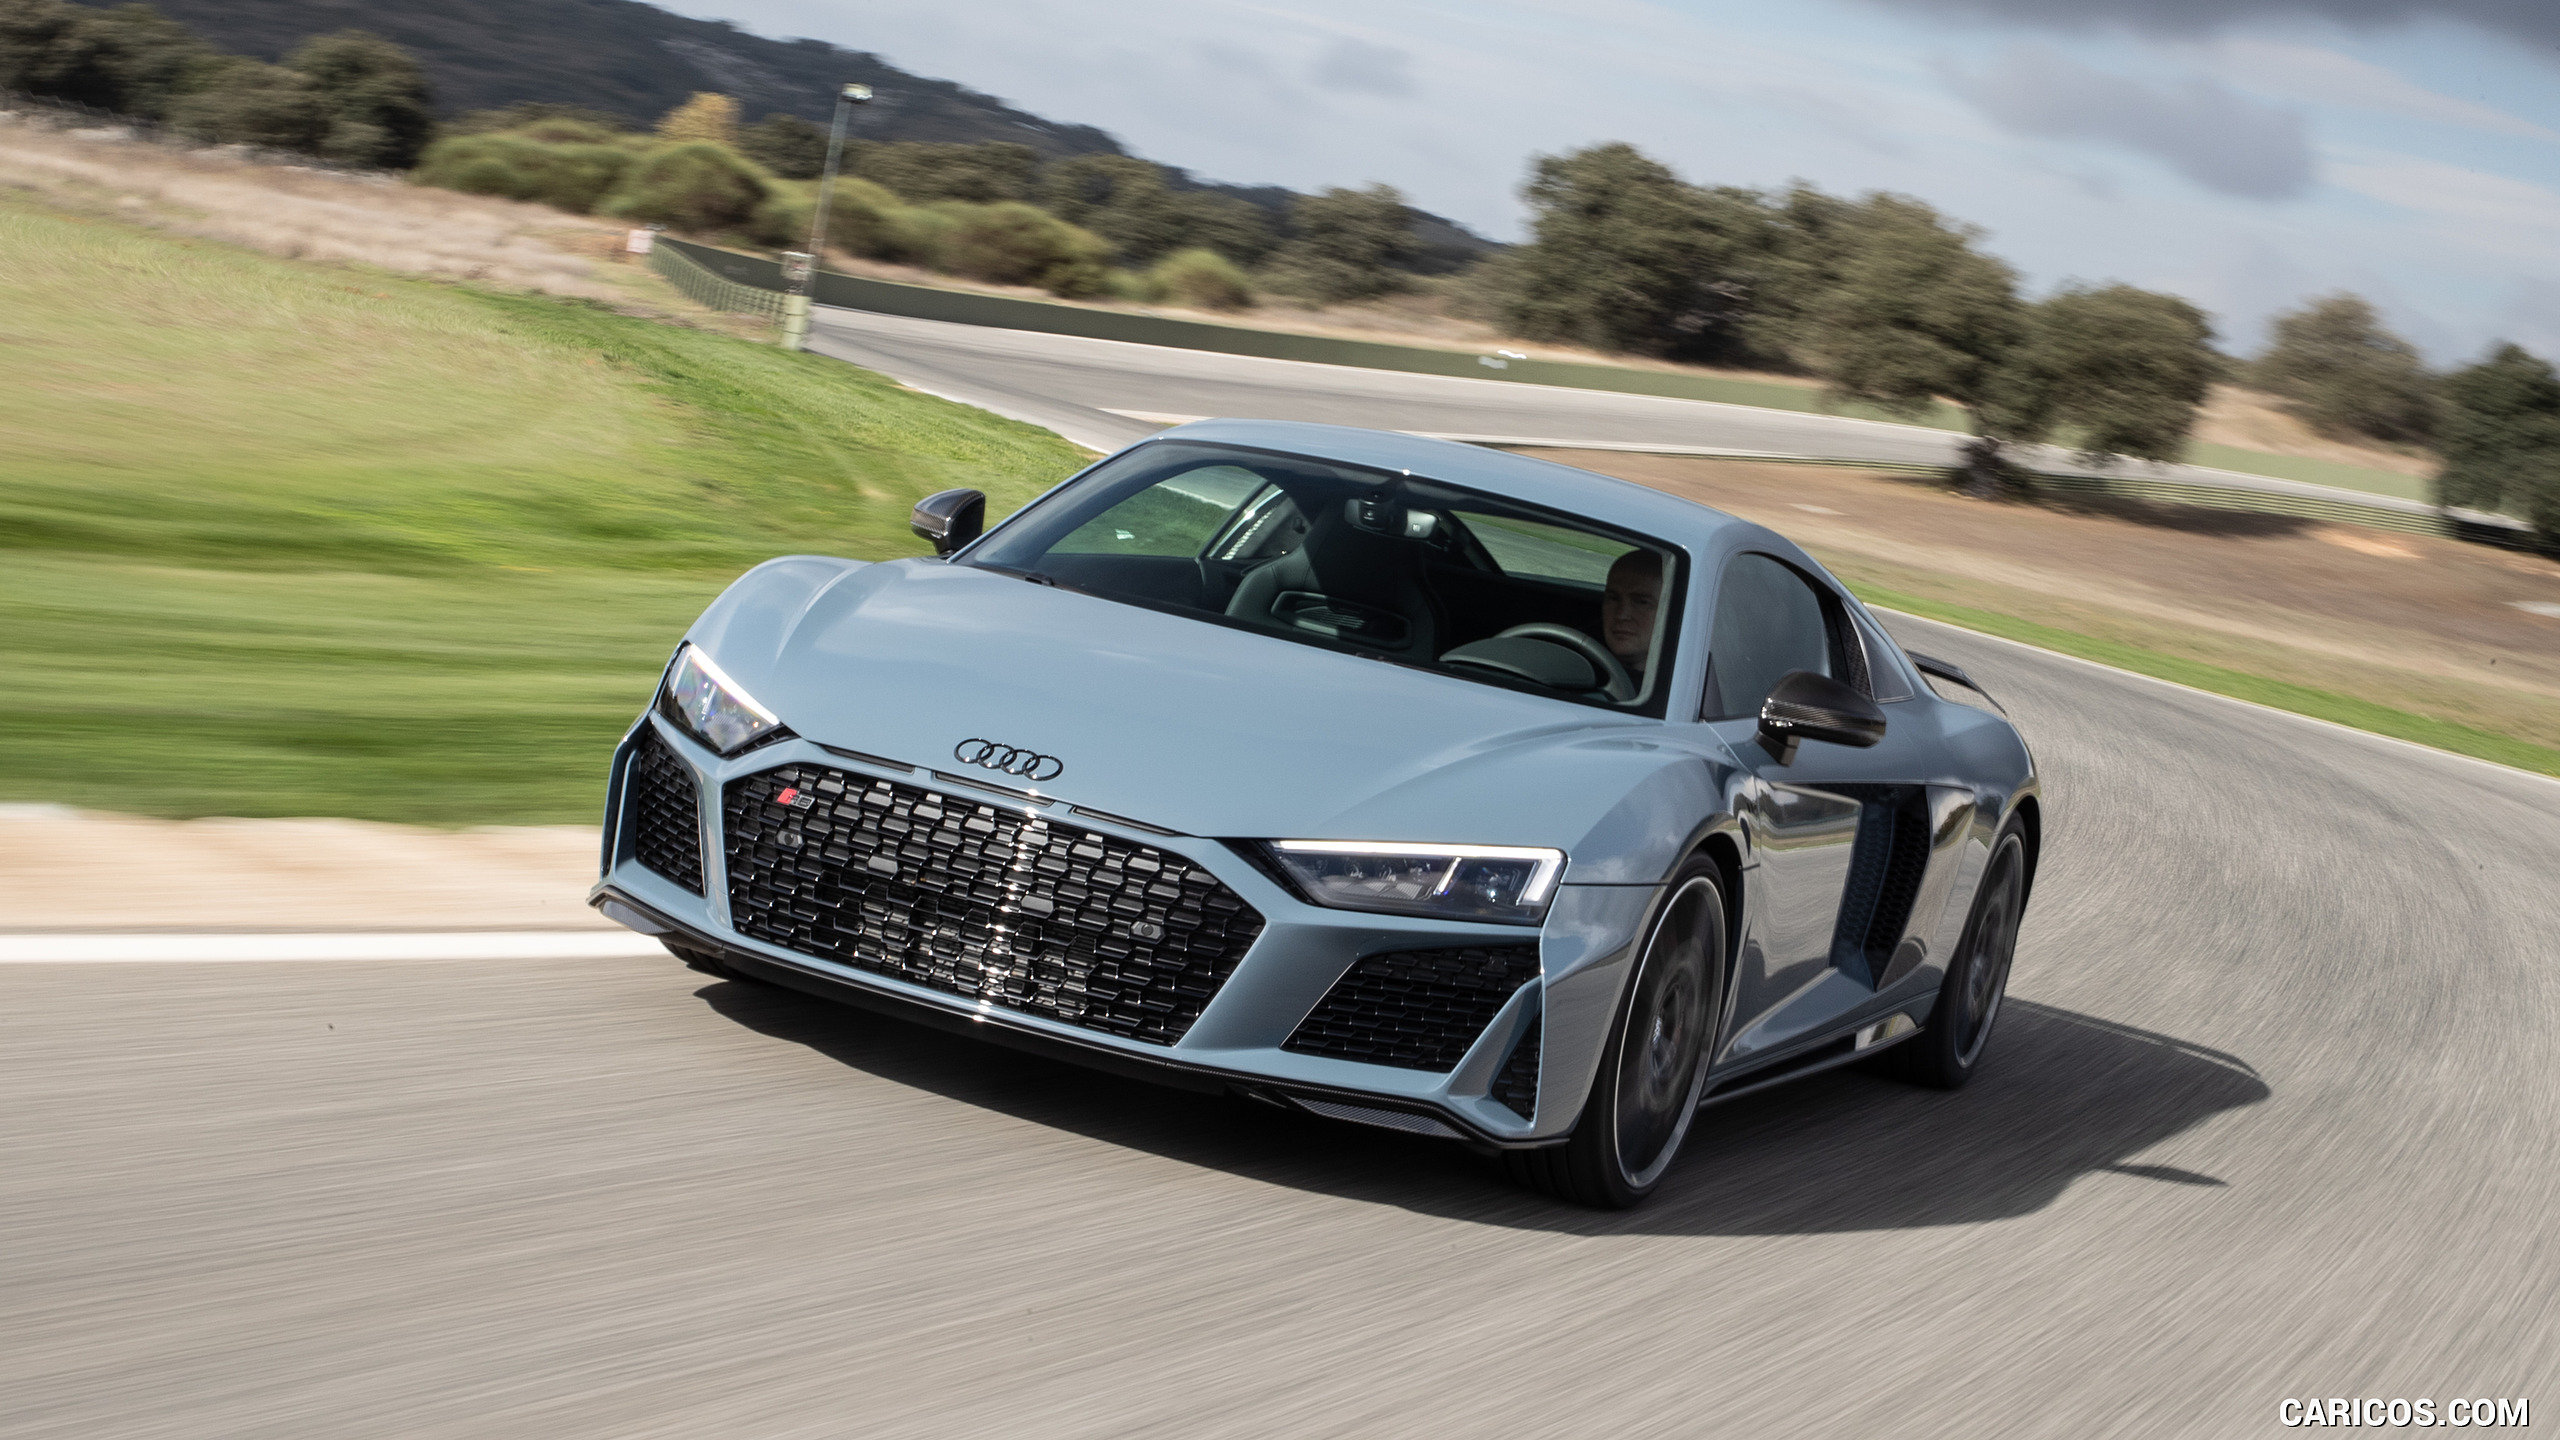 2019 Audi R8 V10 Coupe Color Kemora Gray Metallic   Front HD 2560x1440